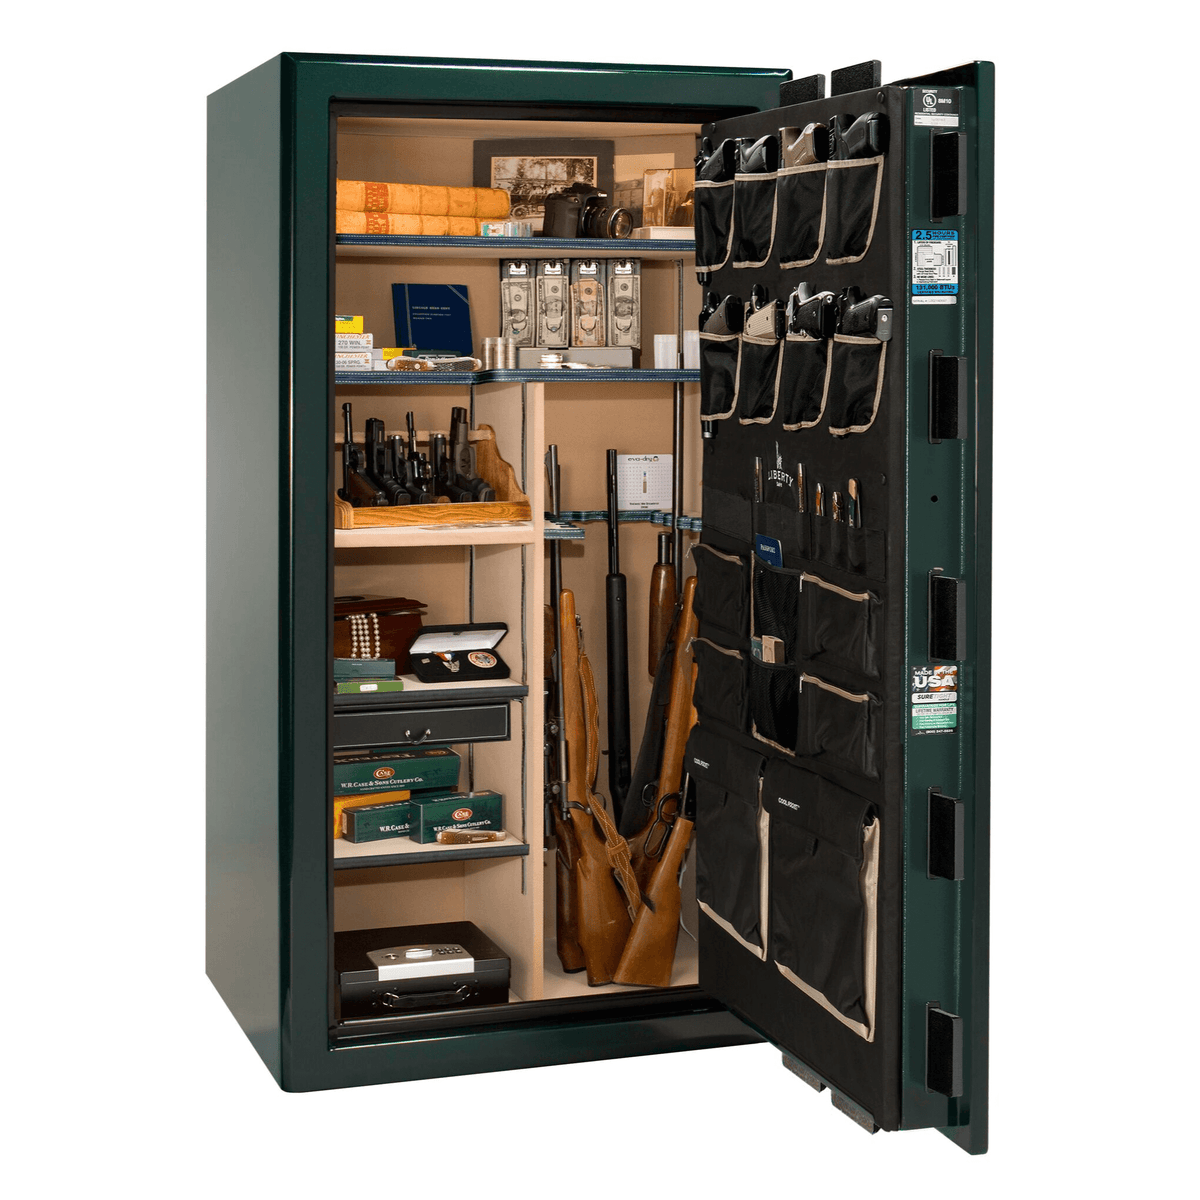 "Presidential | 40 | Level 8 Security | 150 Minute Fire Protection | Green Gloss | Brass Mechanical Lock | 65.5""(H) x 36""(W) x 32""(D)"